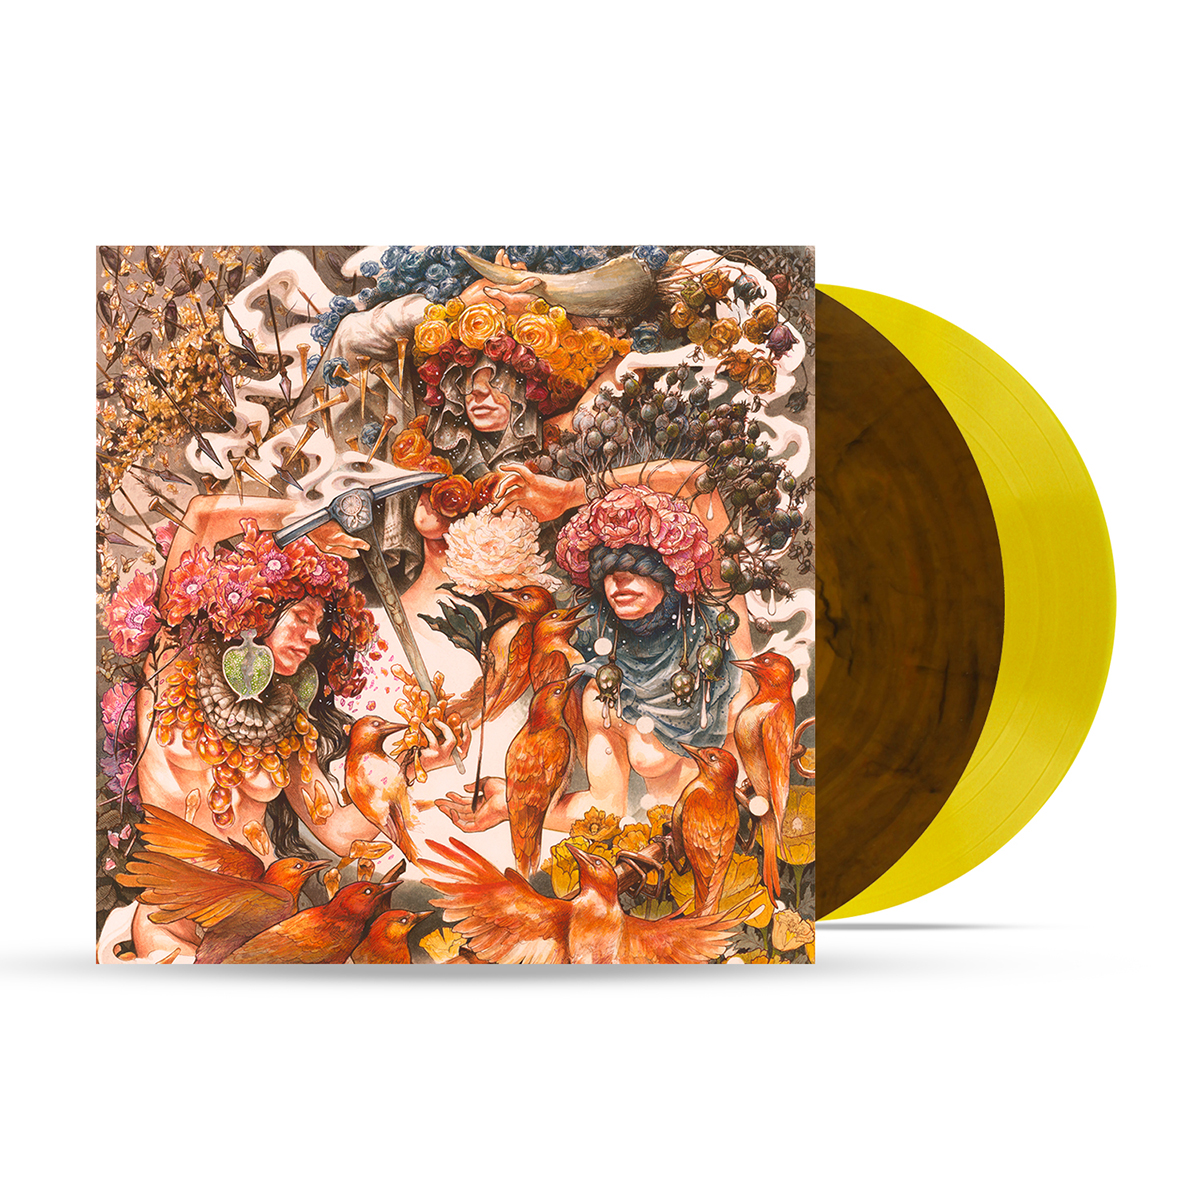 Gold & Grey Yellow Marble Vinyl - Limited To 1000 Units